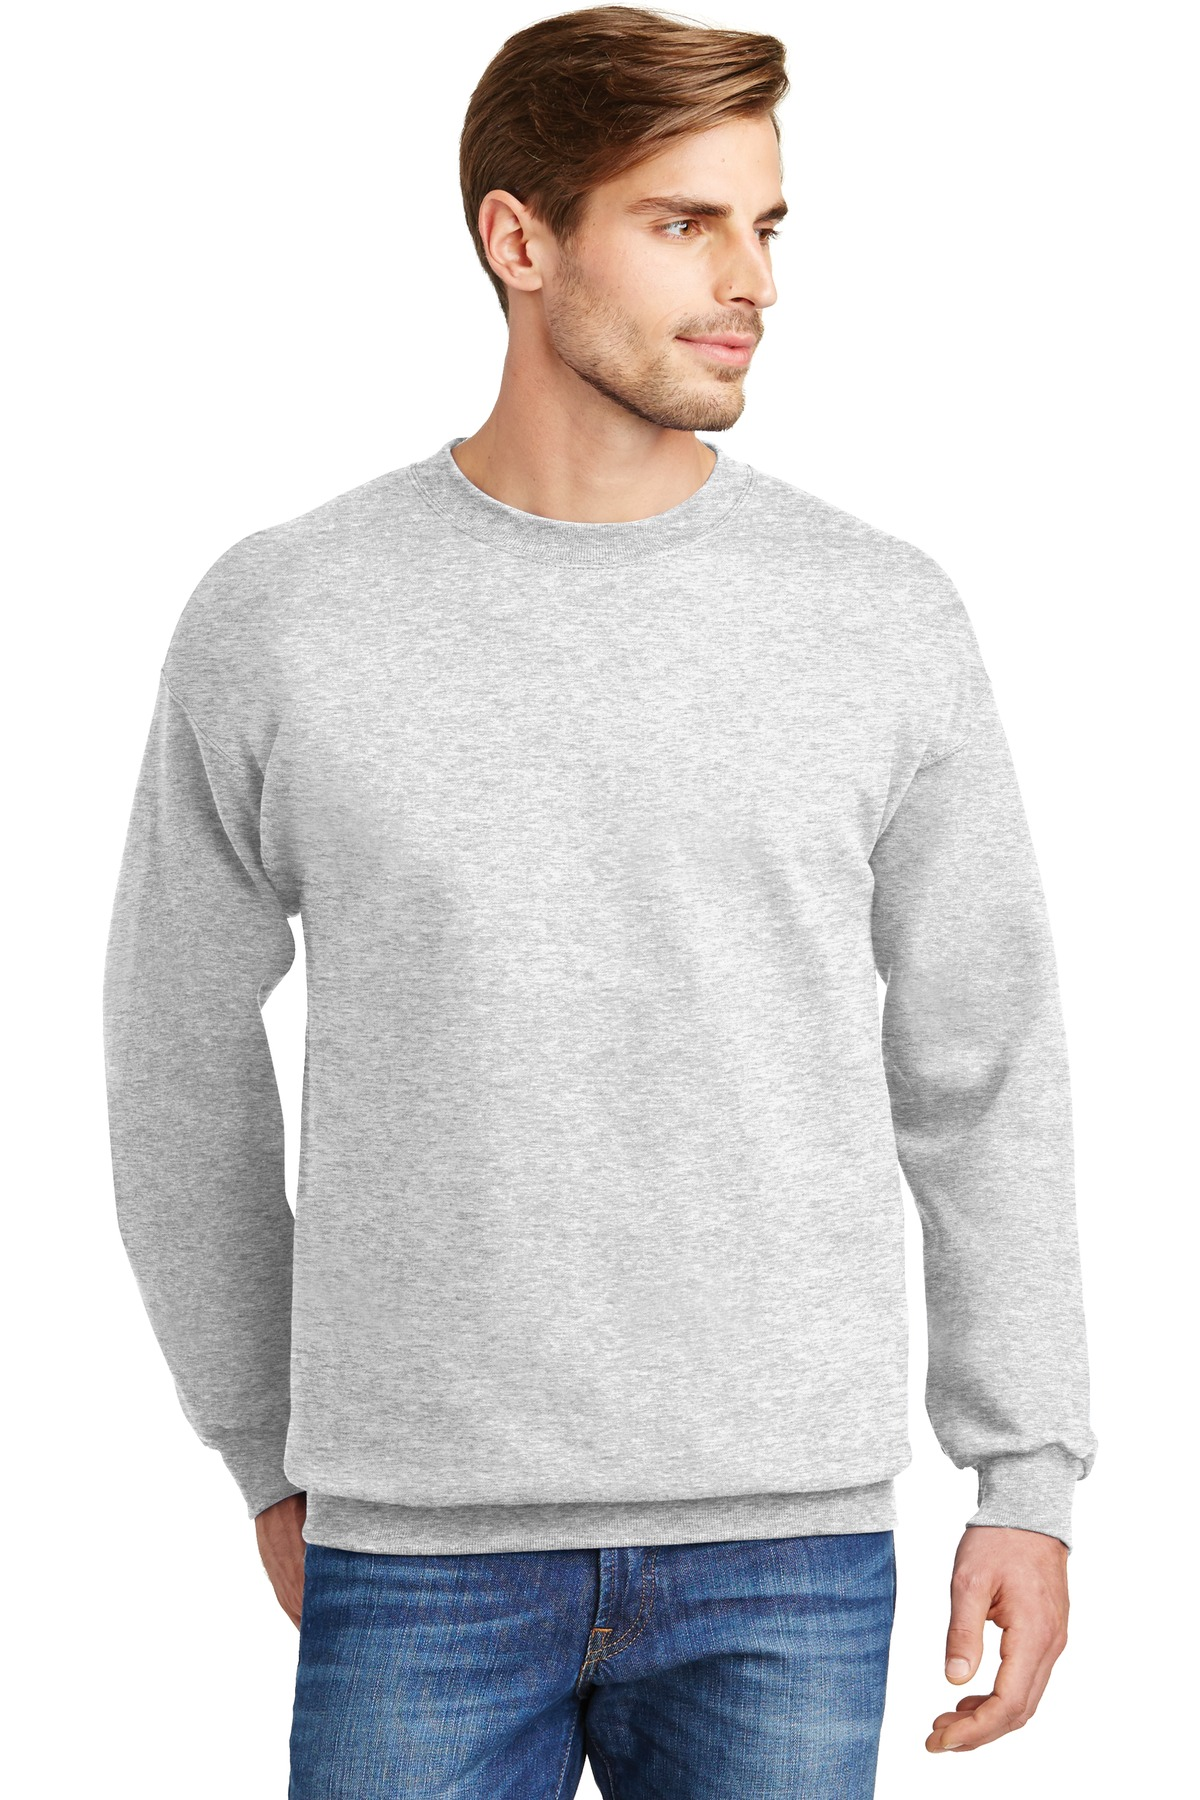 Hanes ®  Ultimate Cotton ®  - Crewneck Sweatshirt.  F260 - Ash